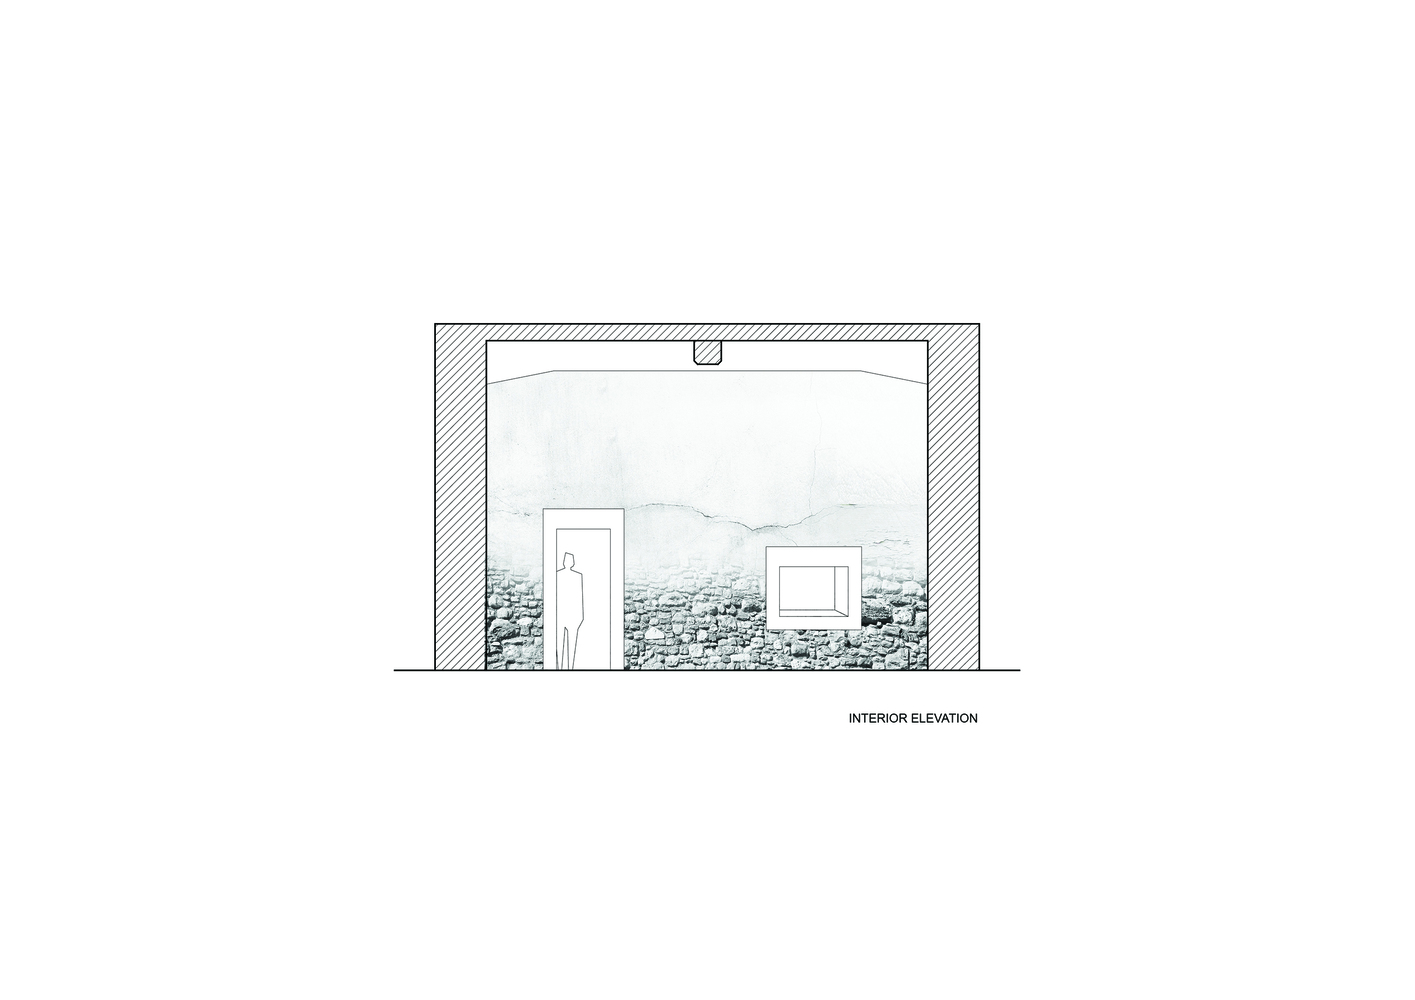 314_Architecture_Studio-glasses_store_elevation-hisheji(2)